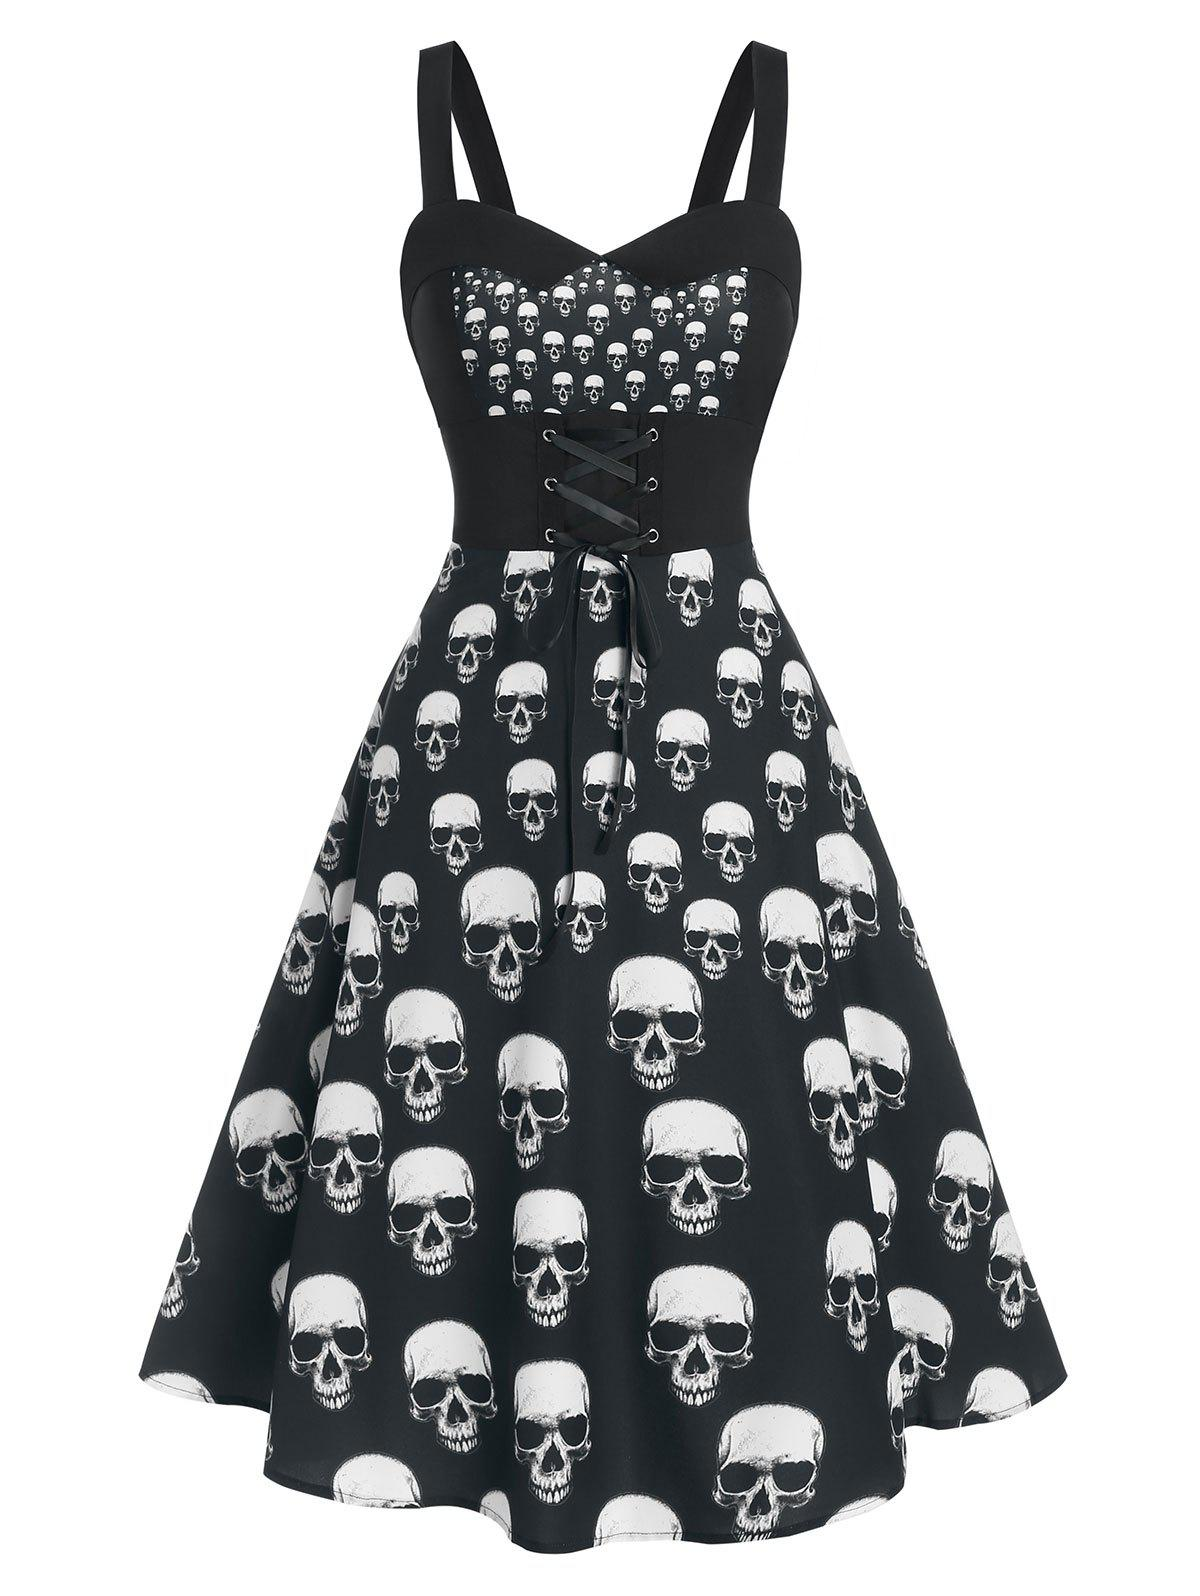 Skull Print Lace Up Cami Mid Calf Dress фото